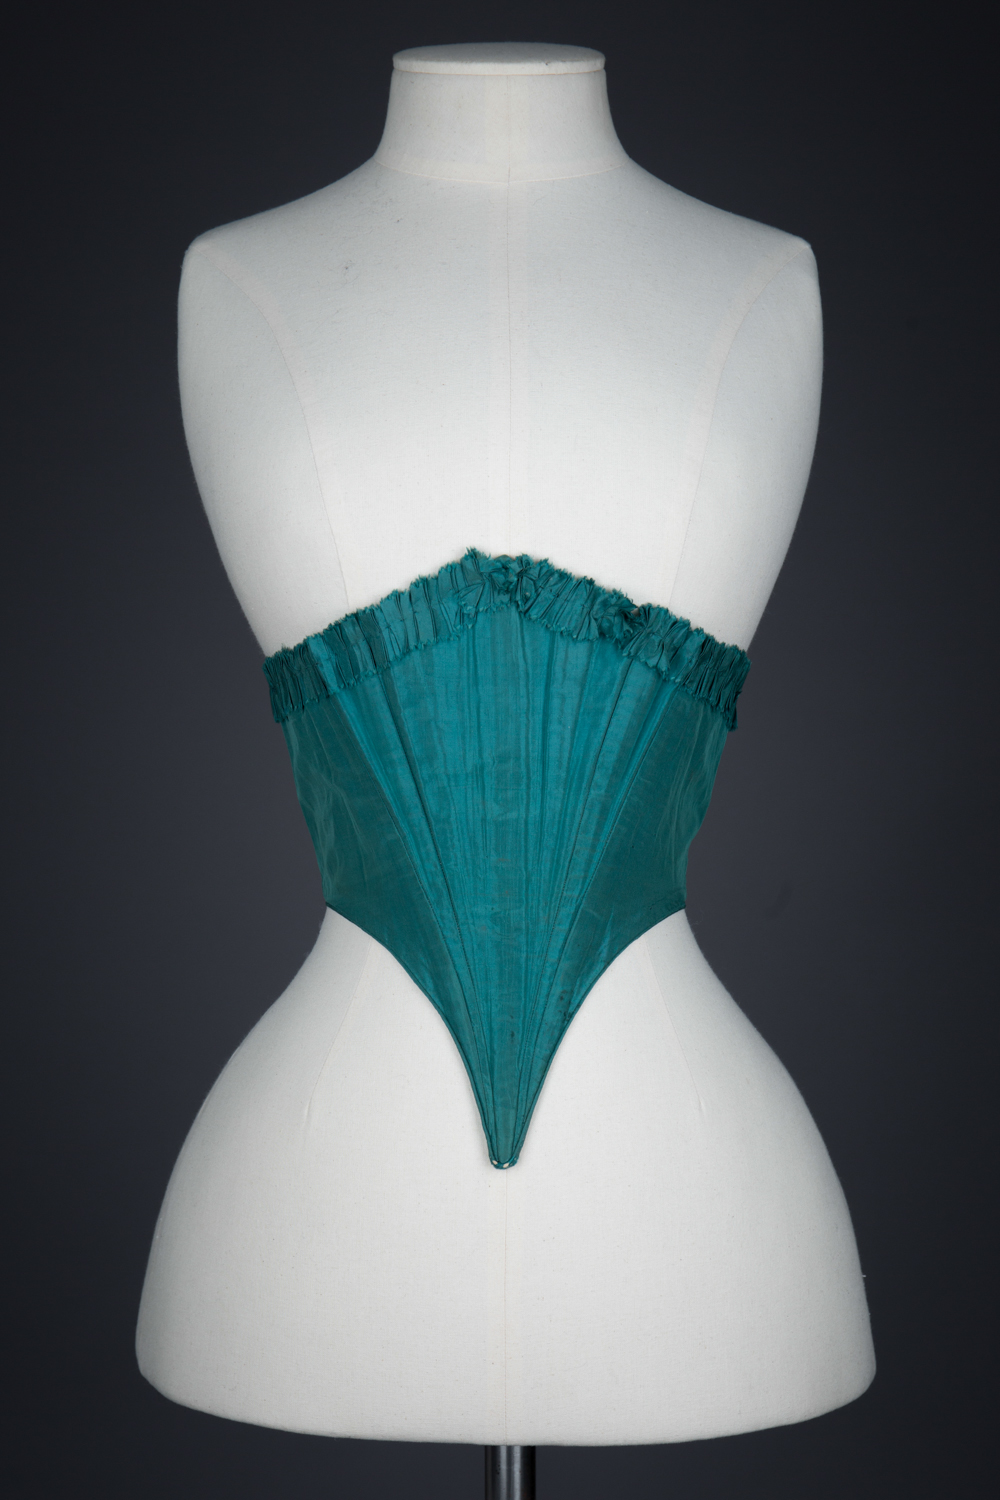 Green Silk Swiss Waist With Ruffled Trim, c. 1860s, USA. The Underpinnings Museum. Photography by Tigz Rice